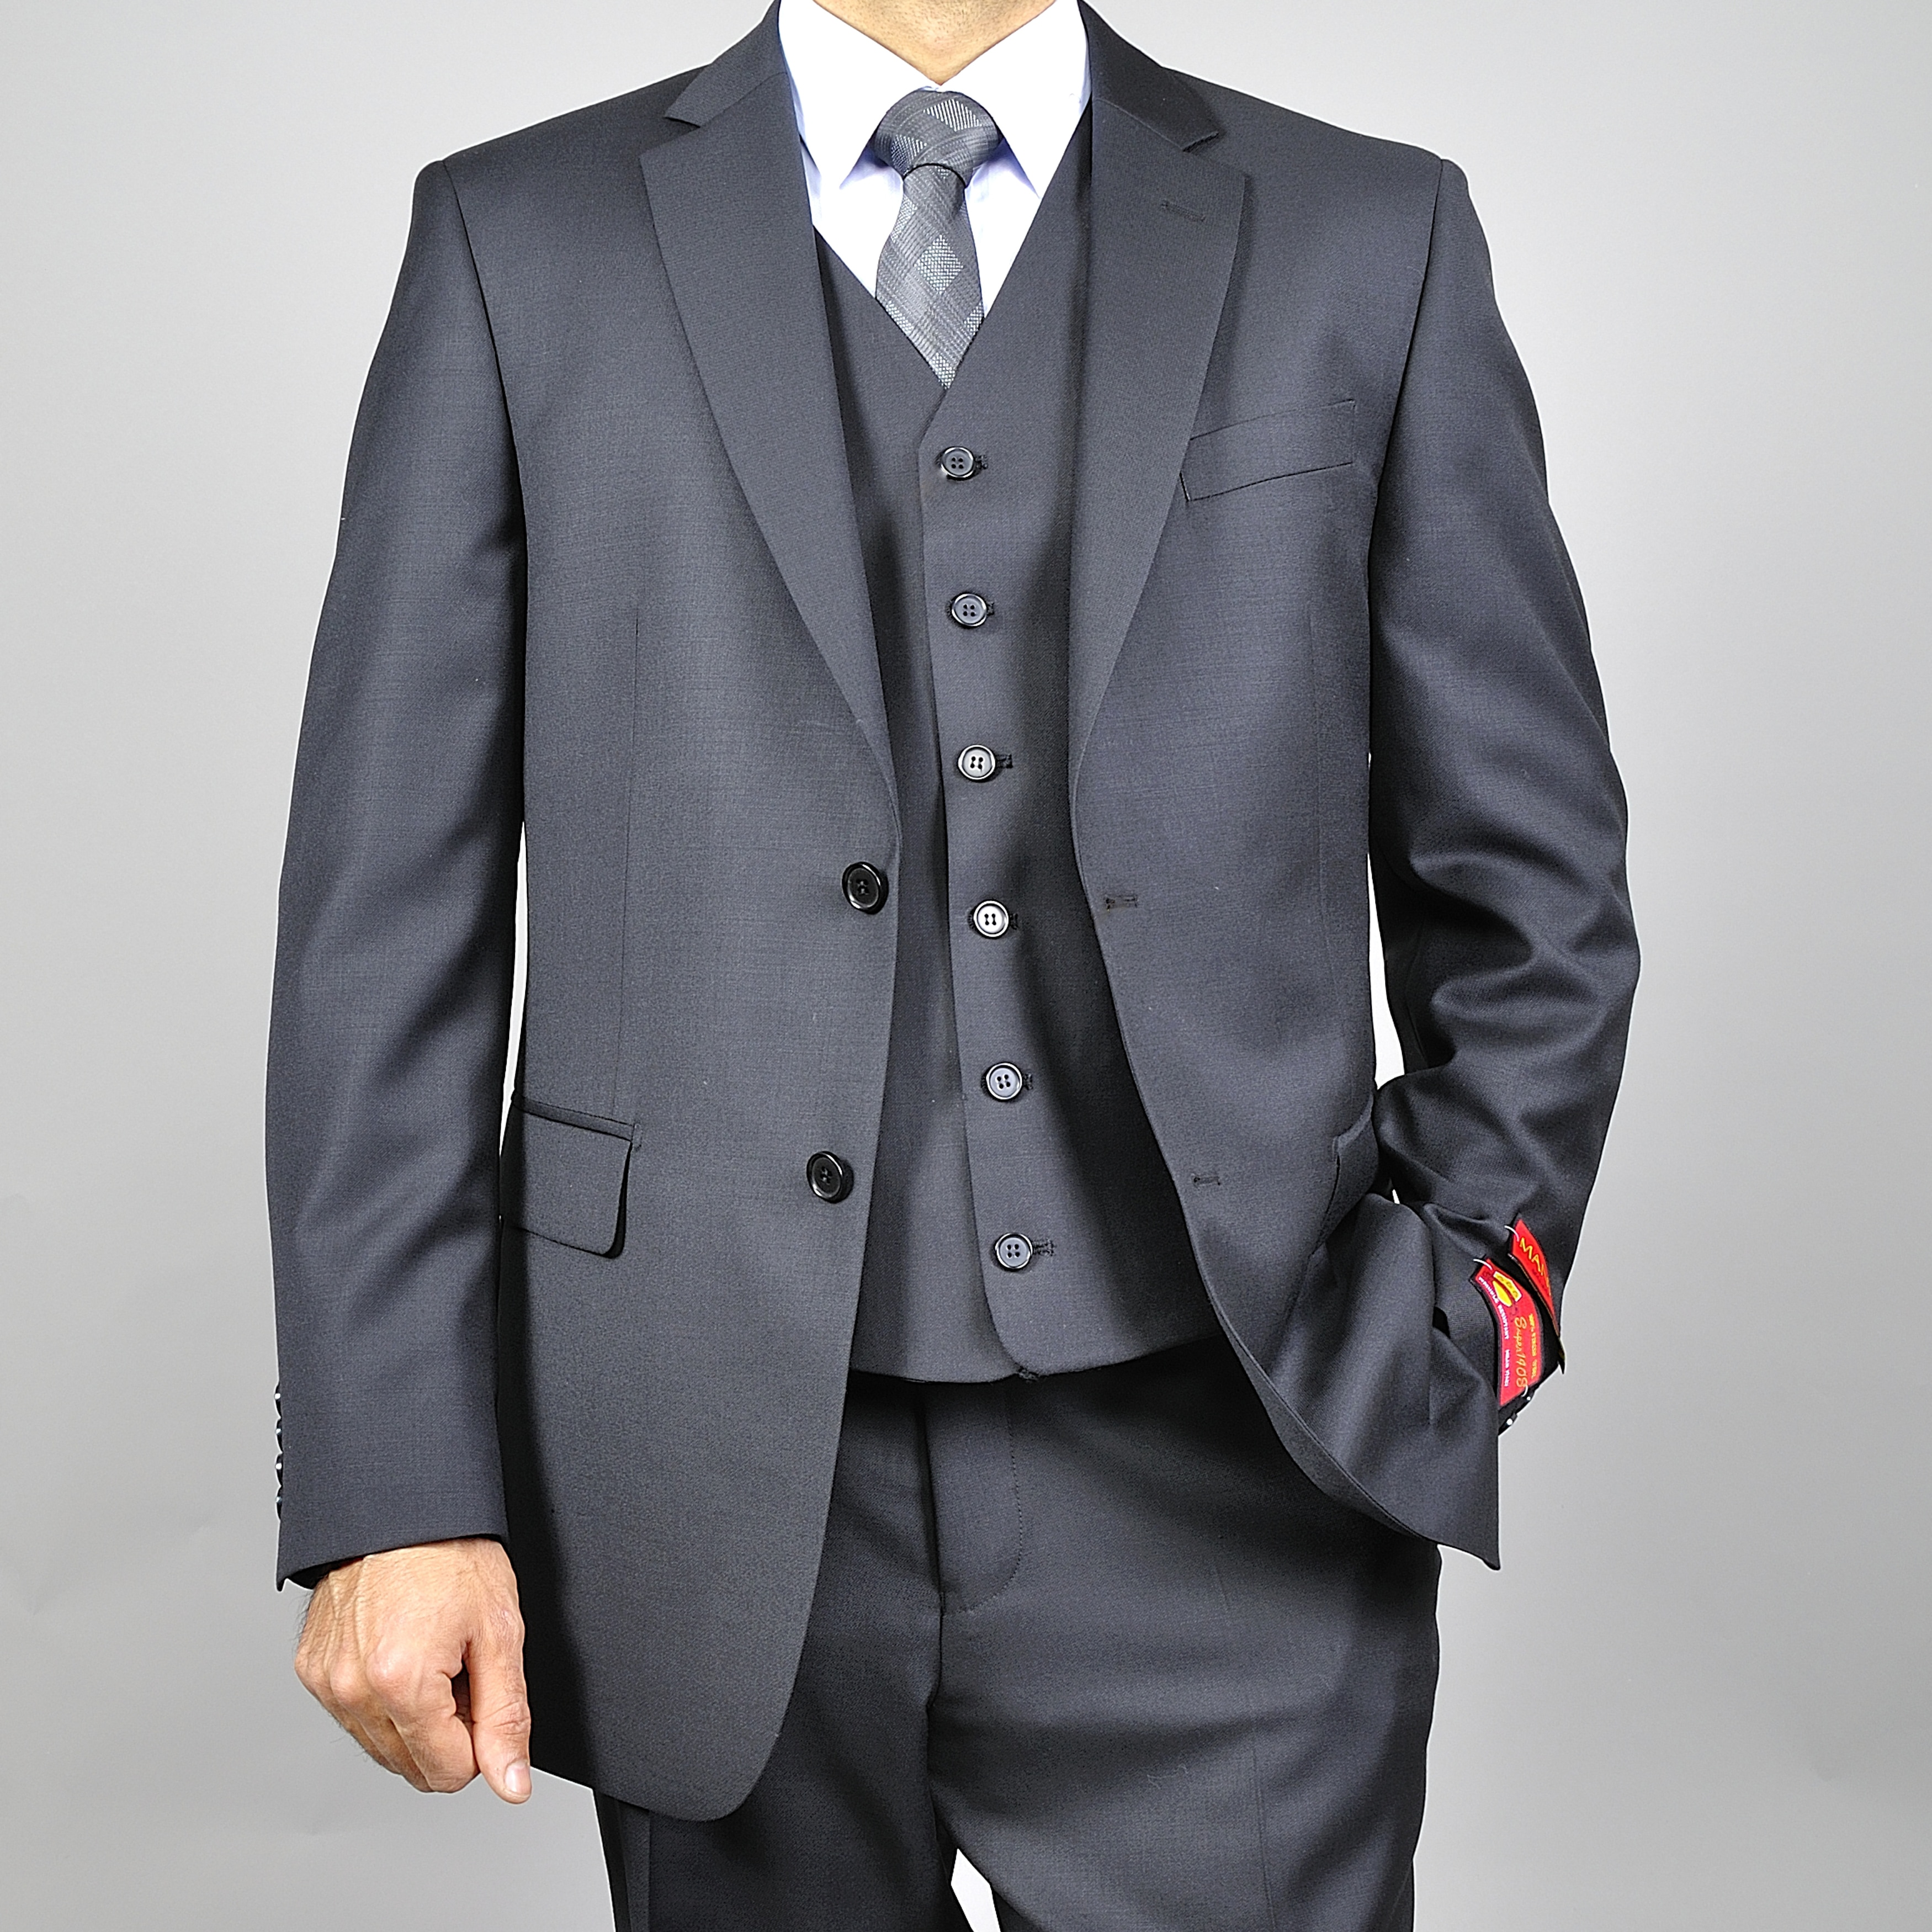 Oliver & James Mantoni Men's Black Vested Wool Suit at mygofer.com